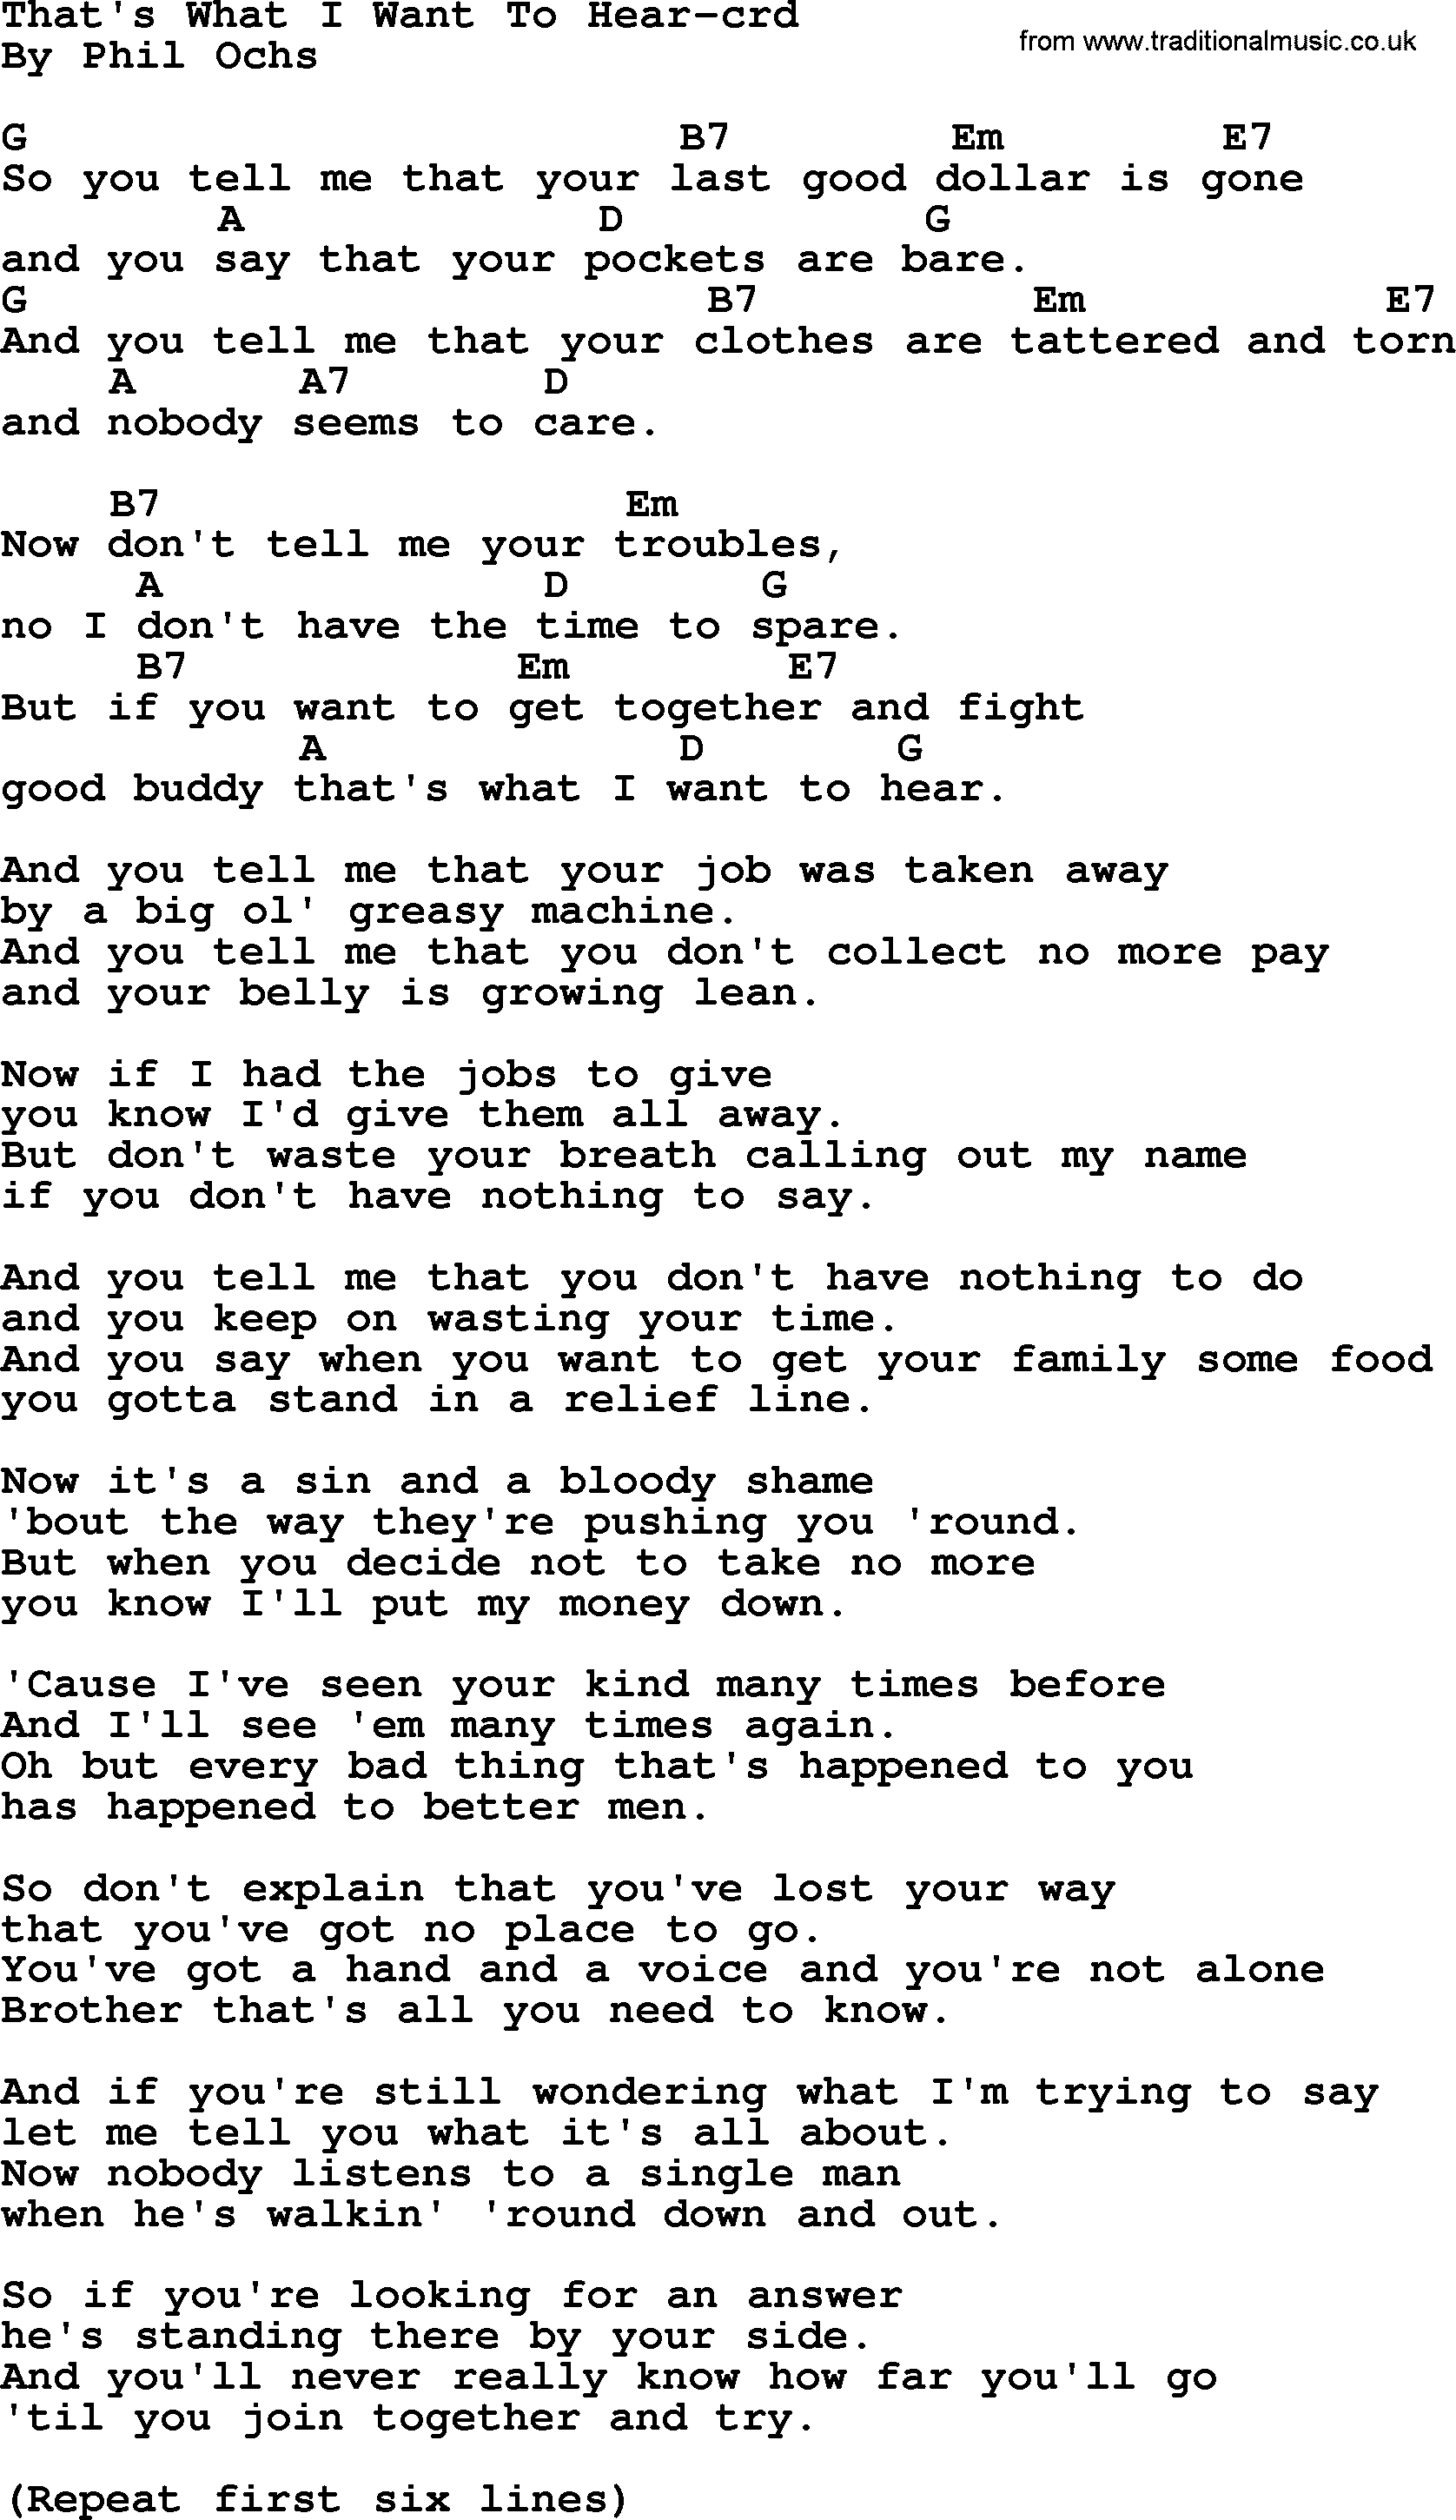 Phil ochs song thats what i want to hear by phil ochs lyrics phil ochs song thats what i want to hear by phil ochs lyrics and hexwebz Choice Image